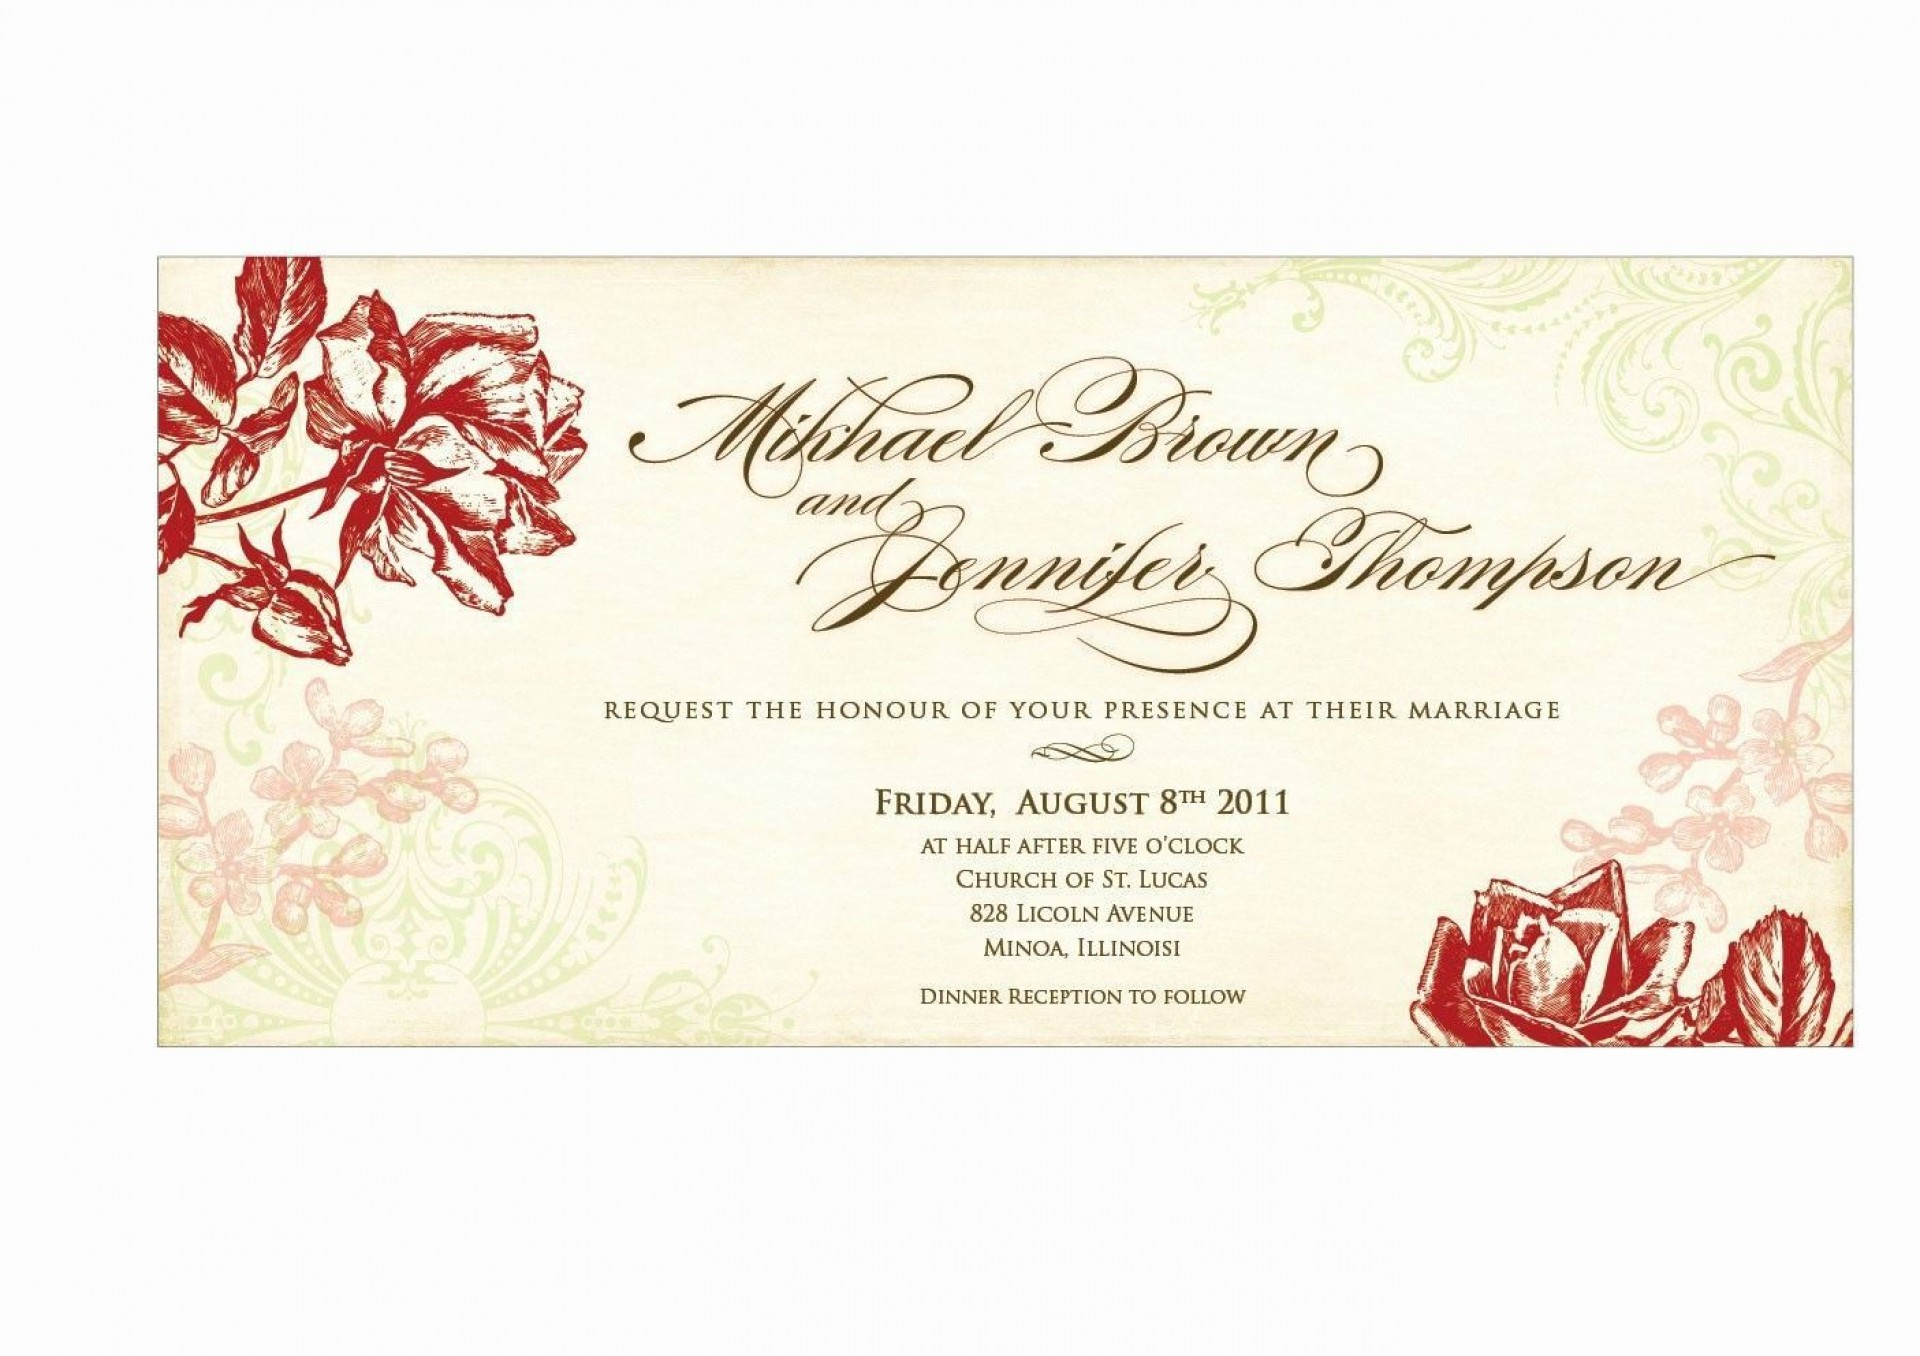 004 Staggering Sample Wedding Invitation Card Template Highest Clarity  Templates Free Design Response Wording1920